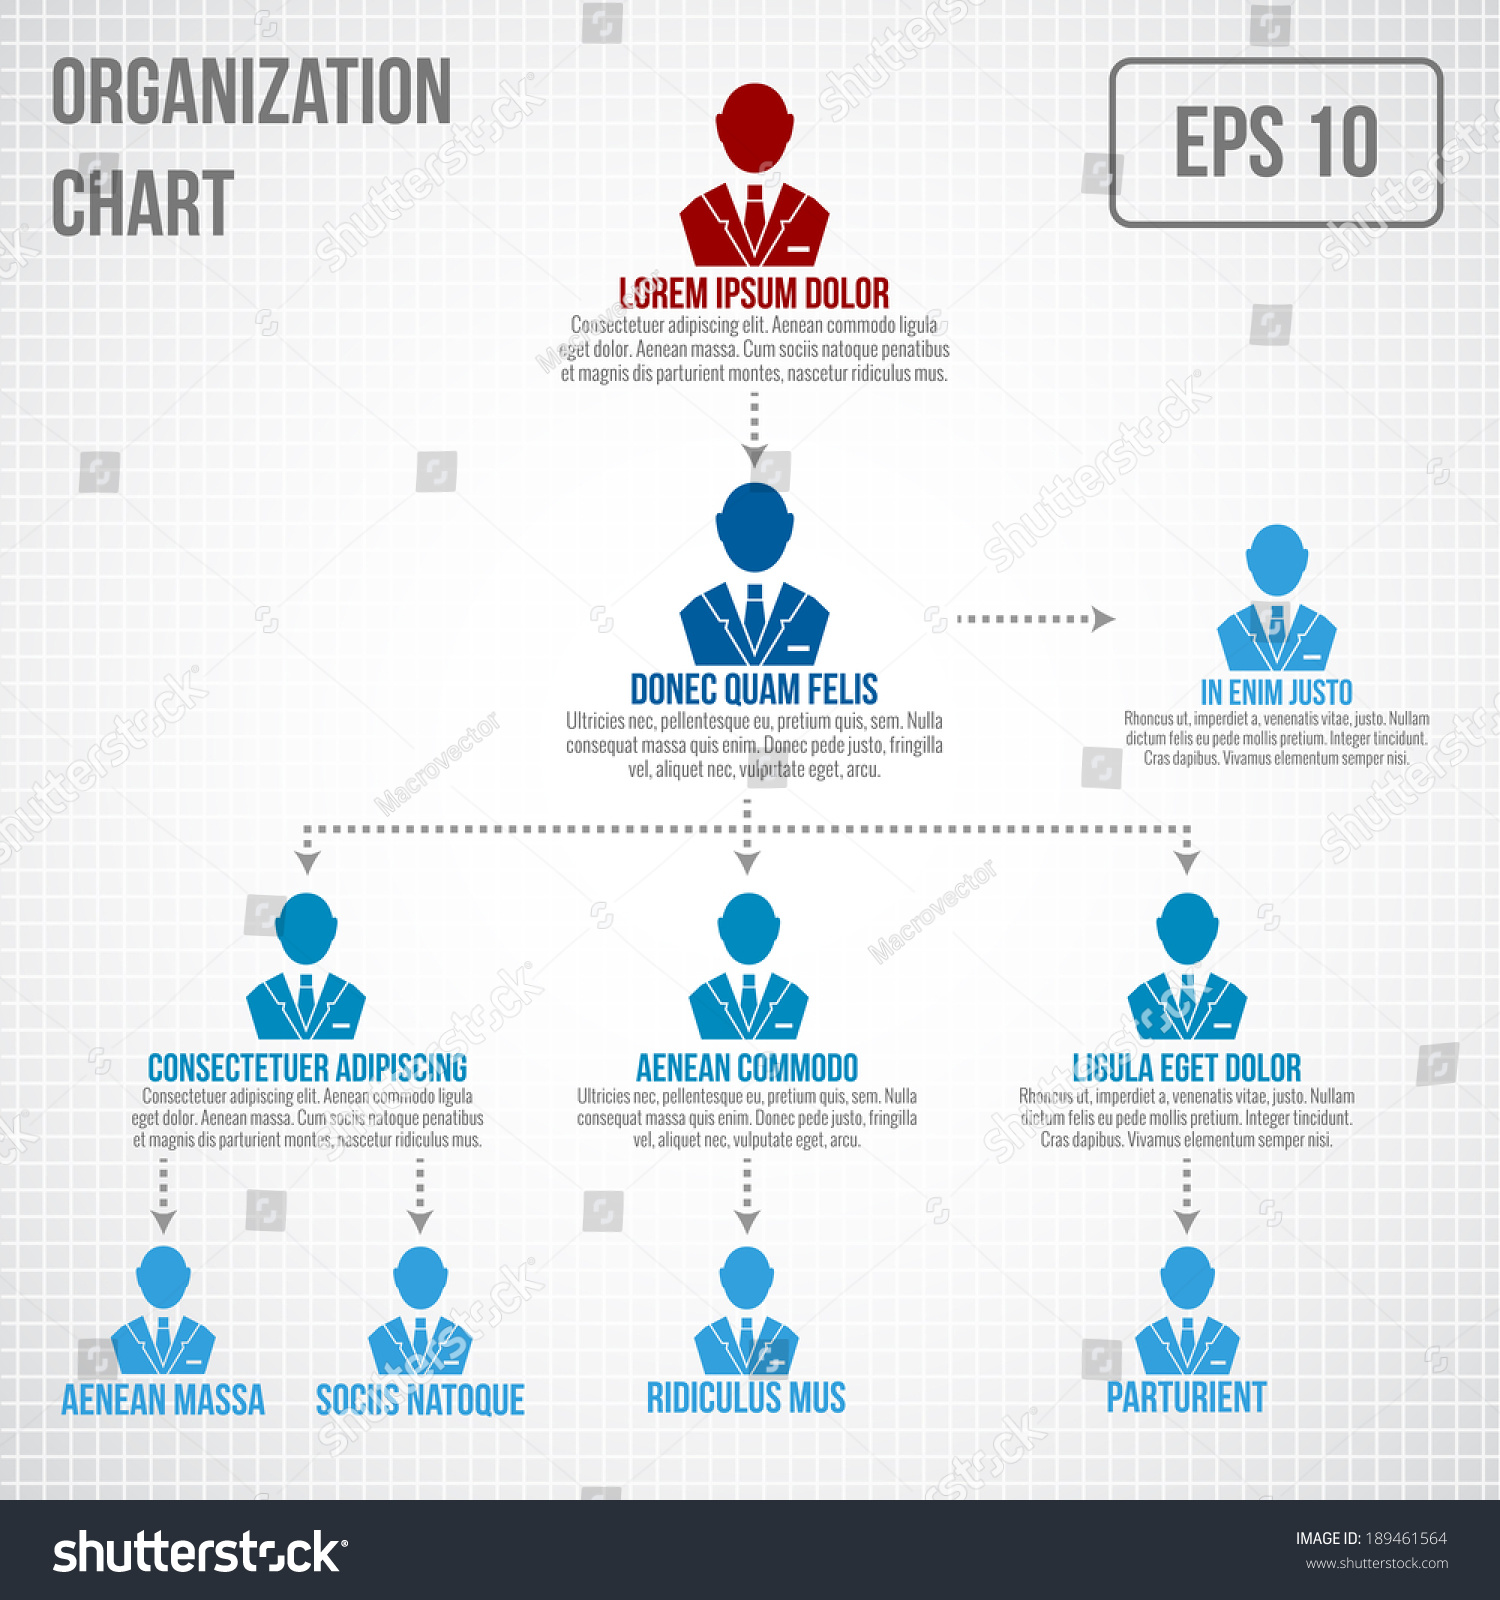 Organisational Chart Infographic Business Hierarchy Boss ...